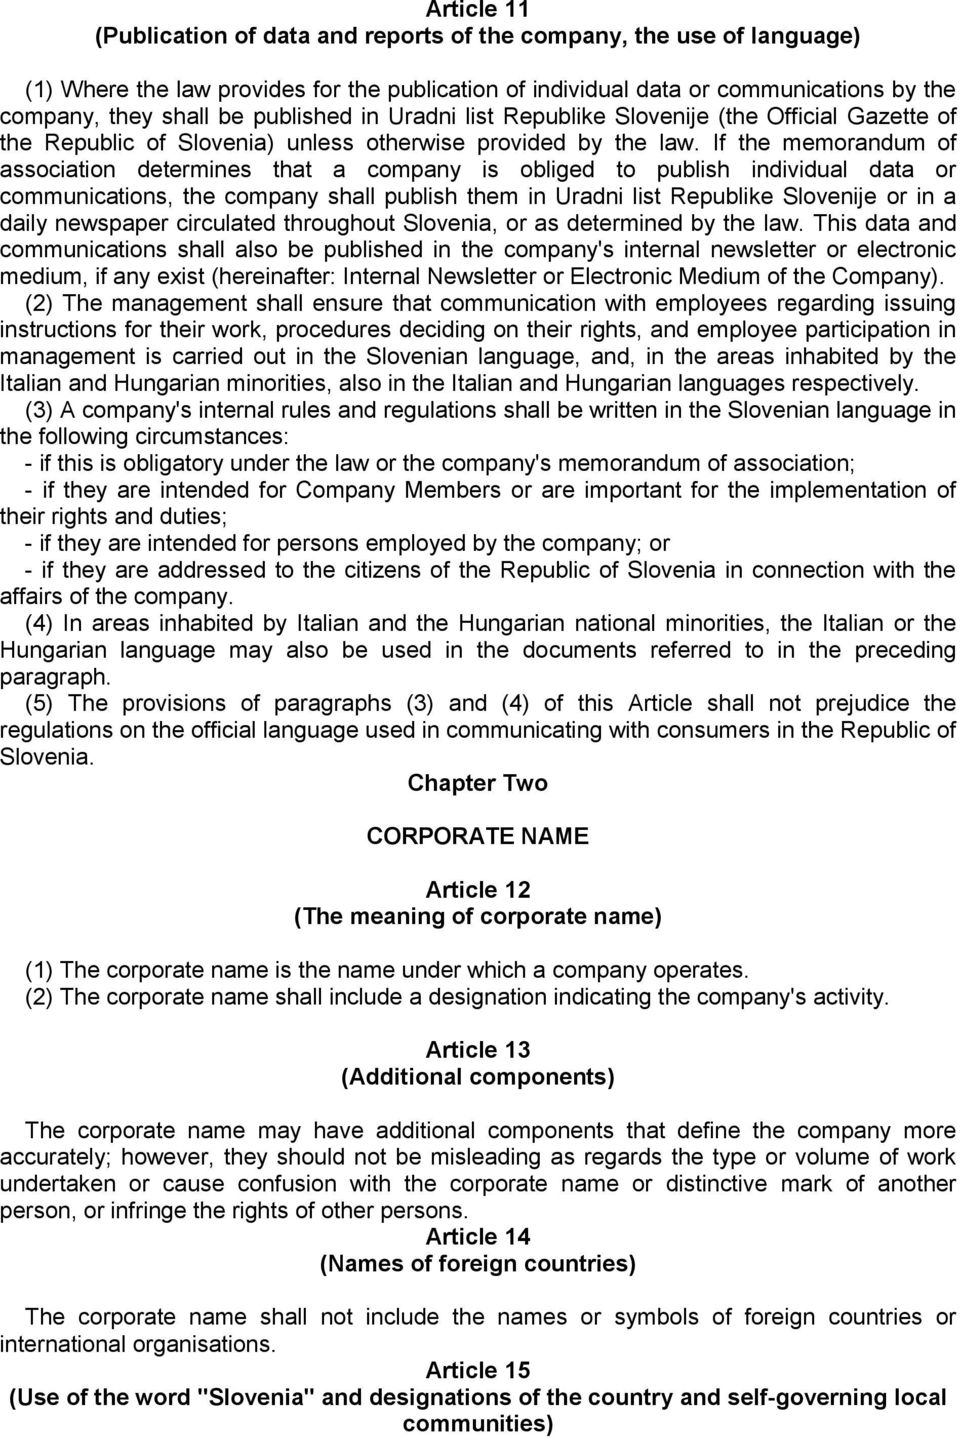 If the memorandum of association determines that a company is obliged to publish individual data or communications, the company shall publish them in Uradni list Republike Slovenije or in a daily